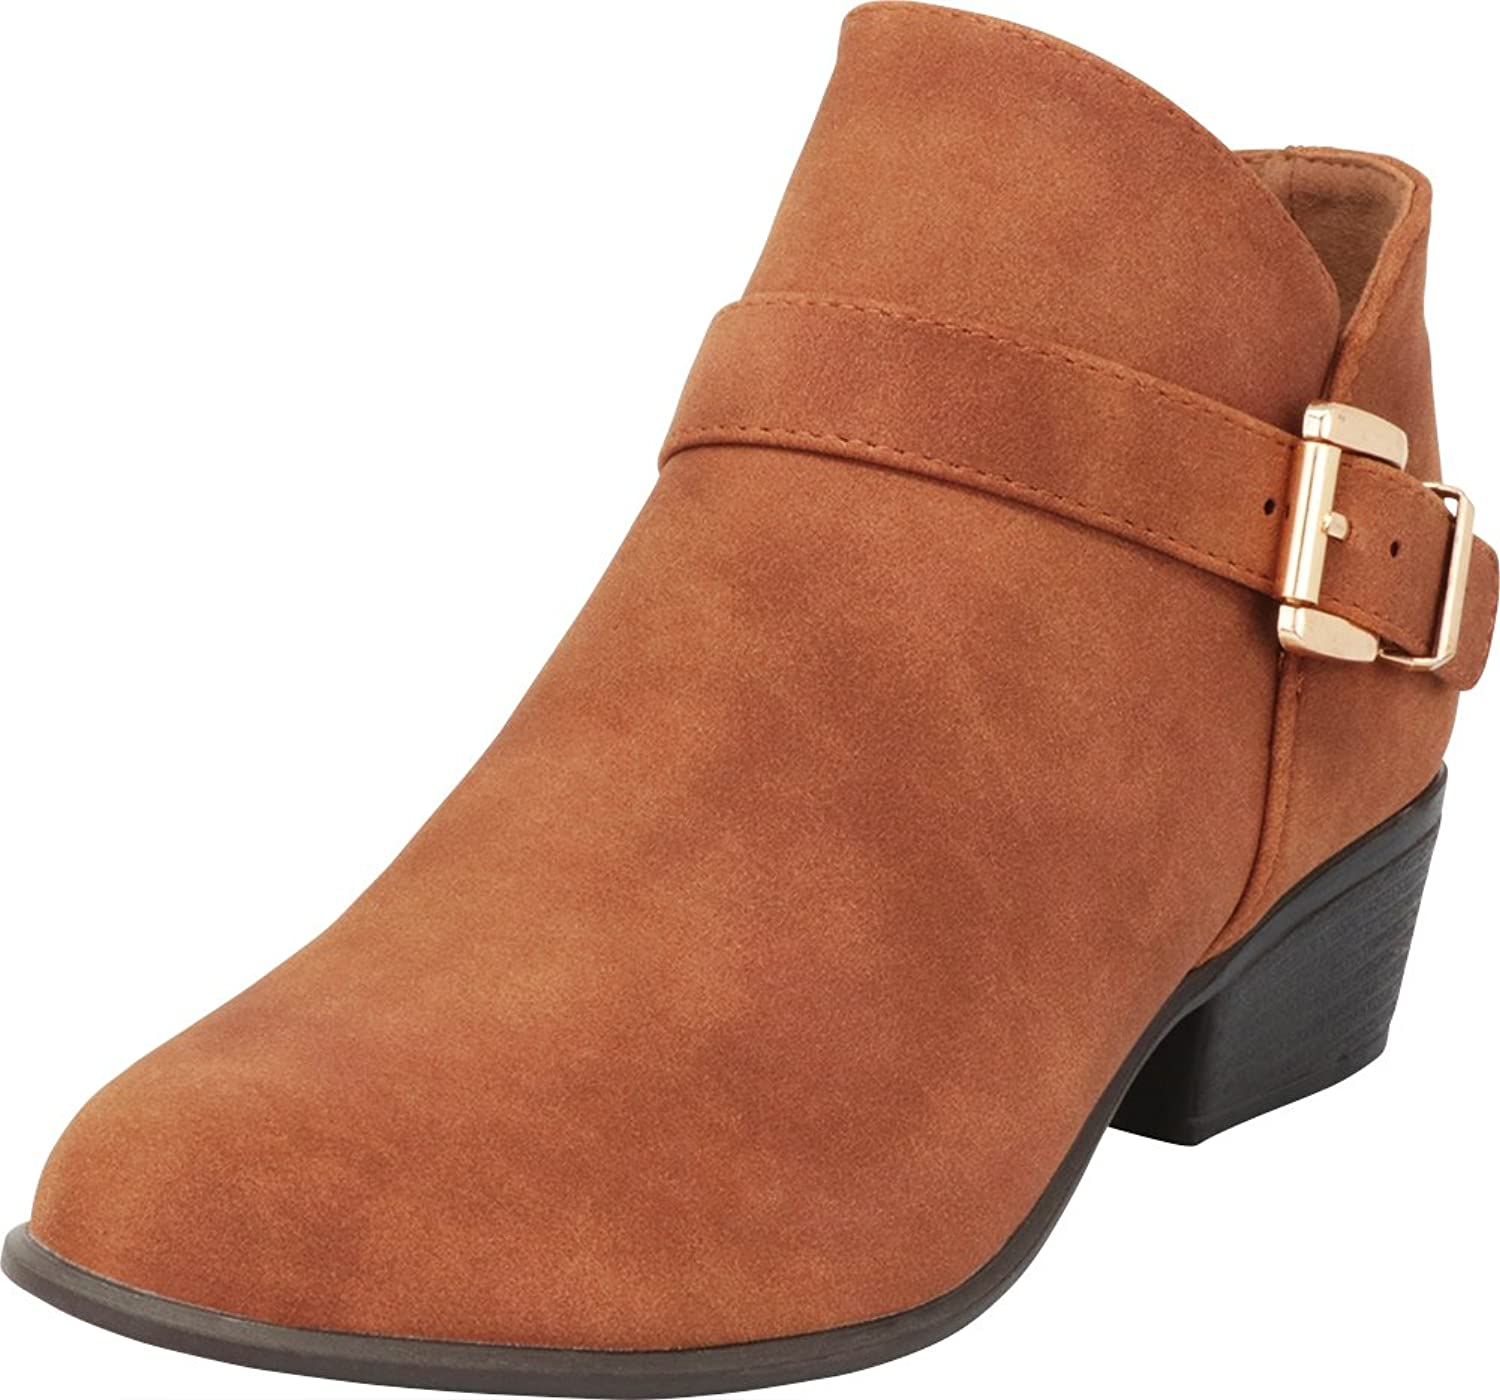 Cambridge Select Women's Western Credver Strap Buckle Stacked Low Heel Ankle Bootie